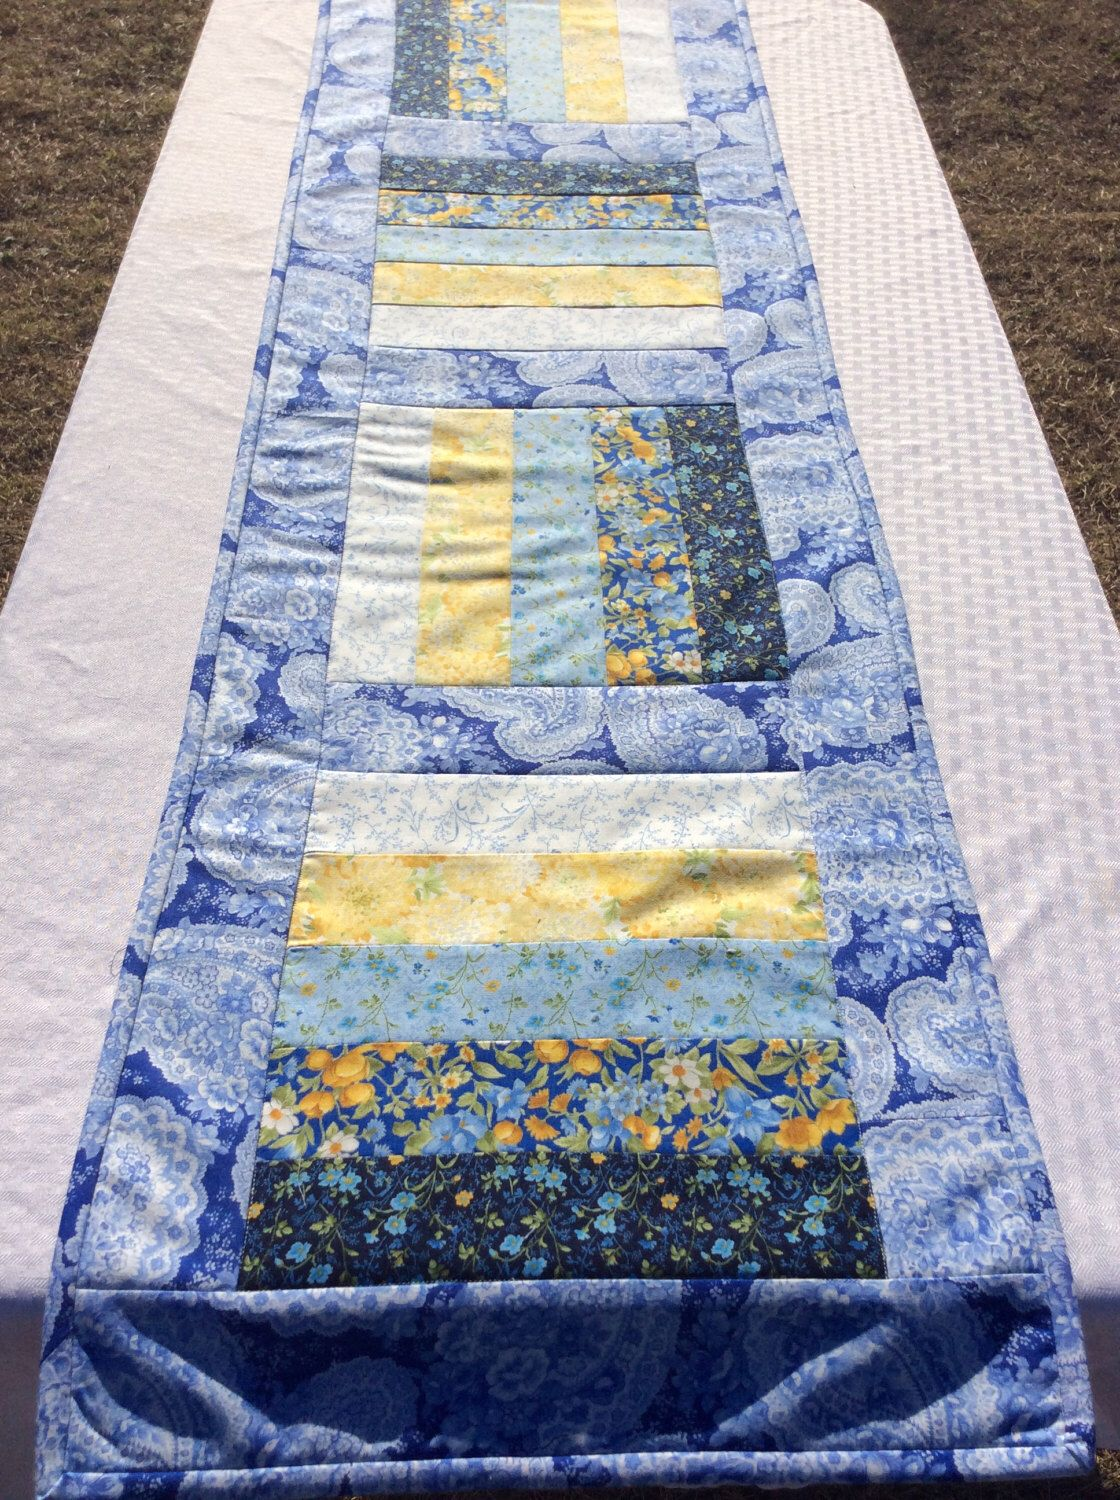 Spring Blue Table Runner Table Topper in A Blue and Yellow Floral Handmade Homemade Quilt Quilted by Heathersquaintquilts on Etsy https://www.etsy.com/listing/509364473/spring-blue-table-runner-table-topper-in